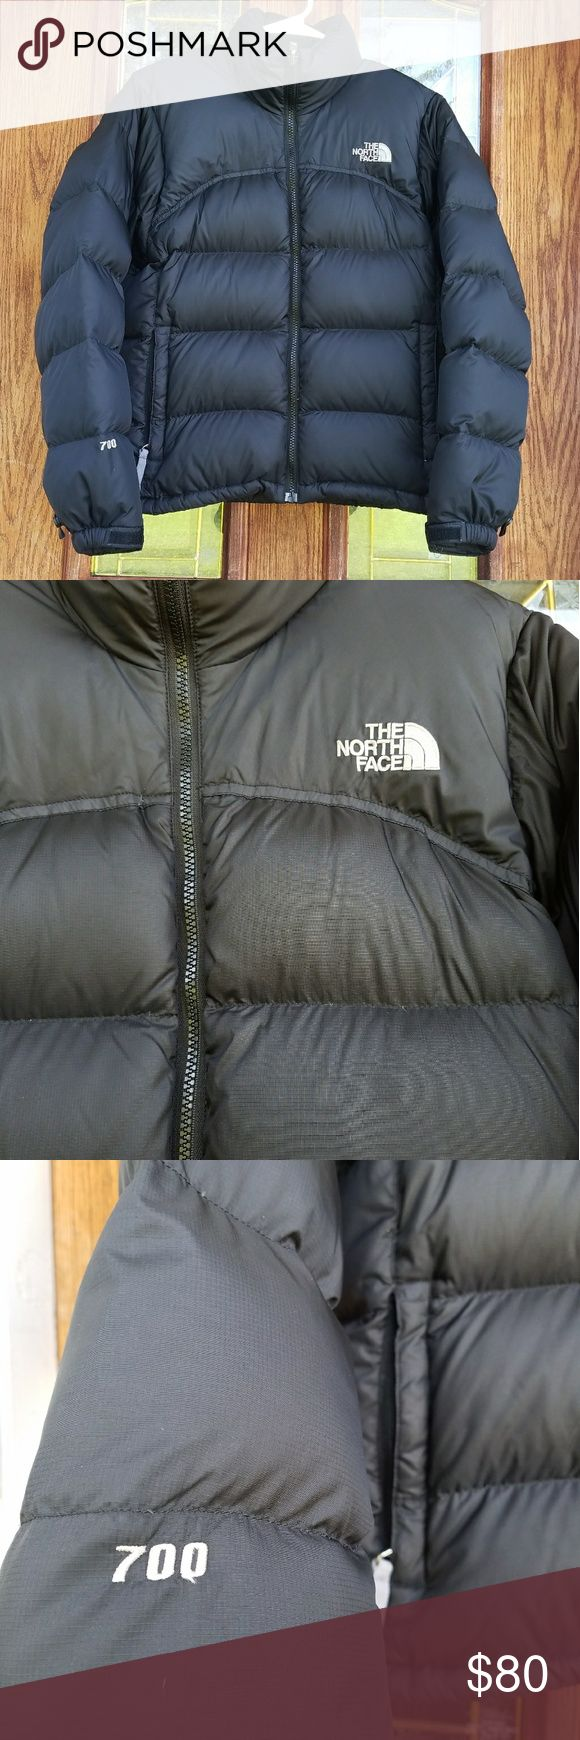 The North Face Puffer Jacket Small The North Face 700 (i think the name is Nuptse, but im not 100%) Puffee down jacket, size small. Great condition. Very small, hardly noticable grey spot on back abpve logo, not sure where it came from. This coat is so warm! The North Face Jackets & Coats